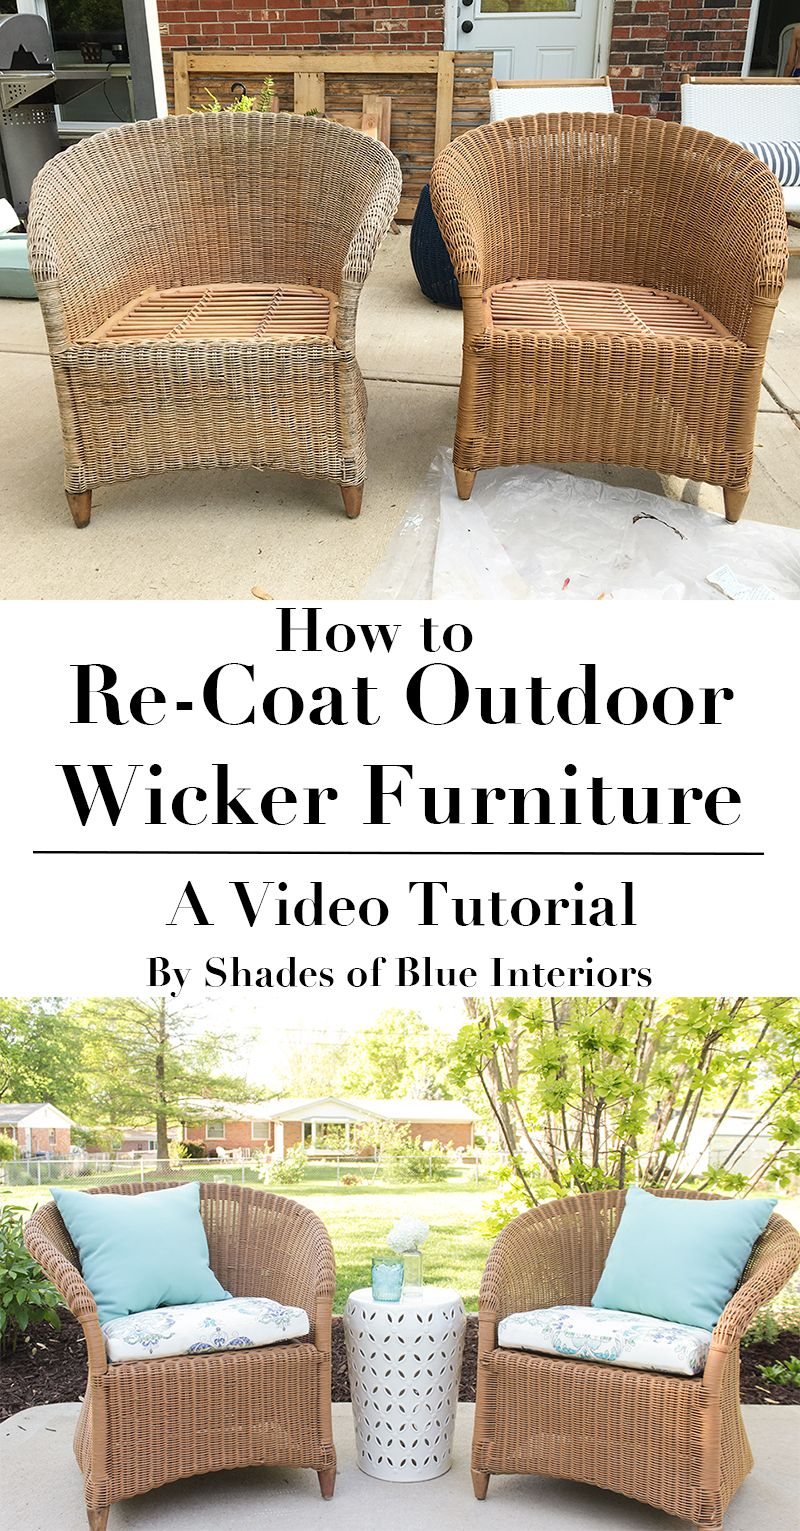 How to Re-Coat Wicker Furniture – Shades of Blue Interiors